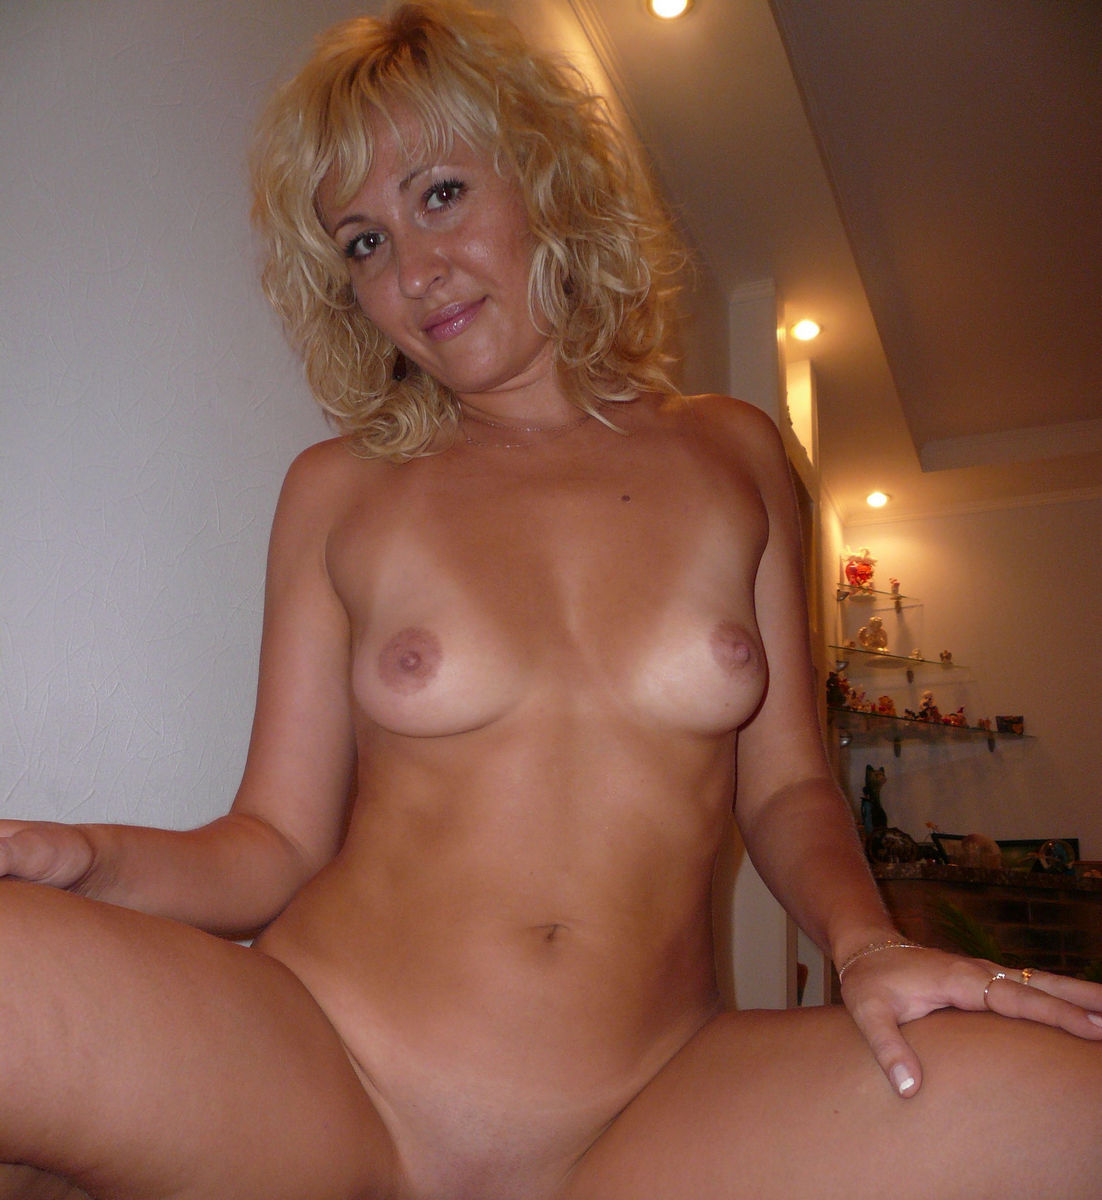 With big milfs boobs naked